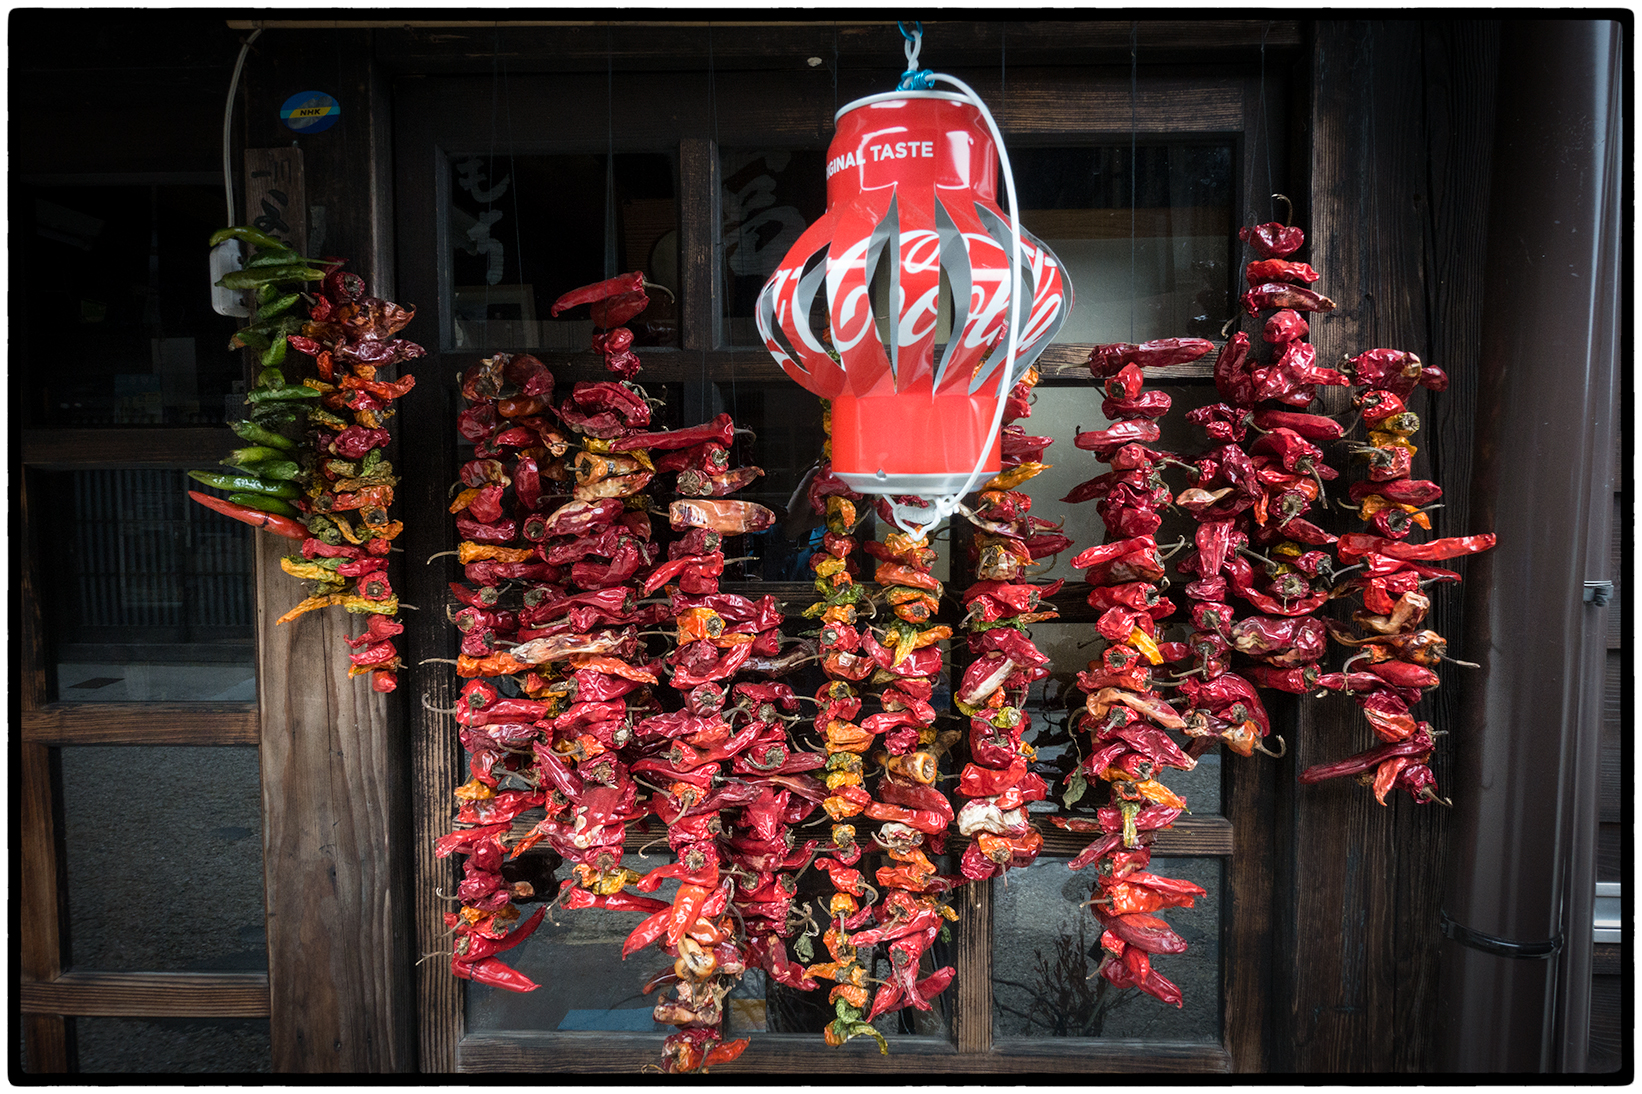 Drying peppers and a Coca-Cola Candle Holder